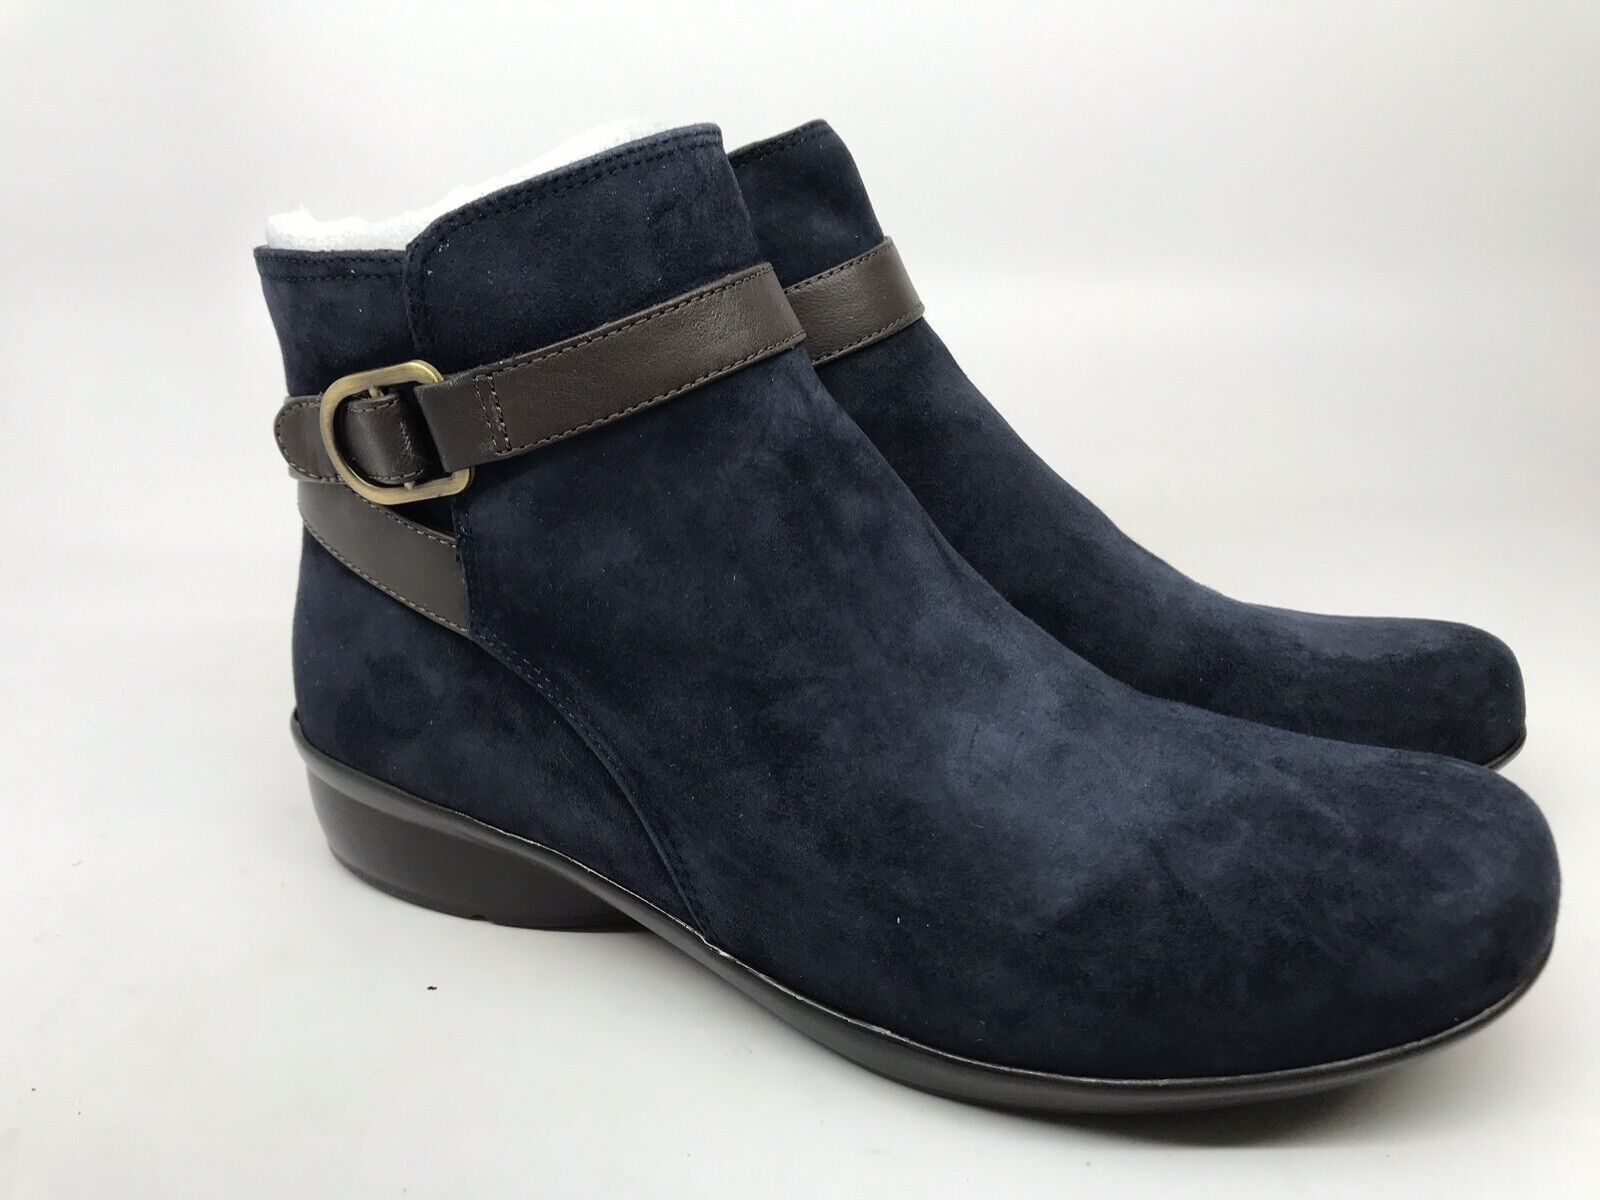 Naturalizer Womens Cassandra Navy Suede Ankle Boot Flat Comfort Size 8.5 M NEW